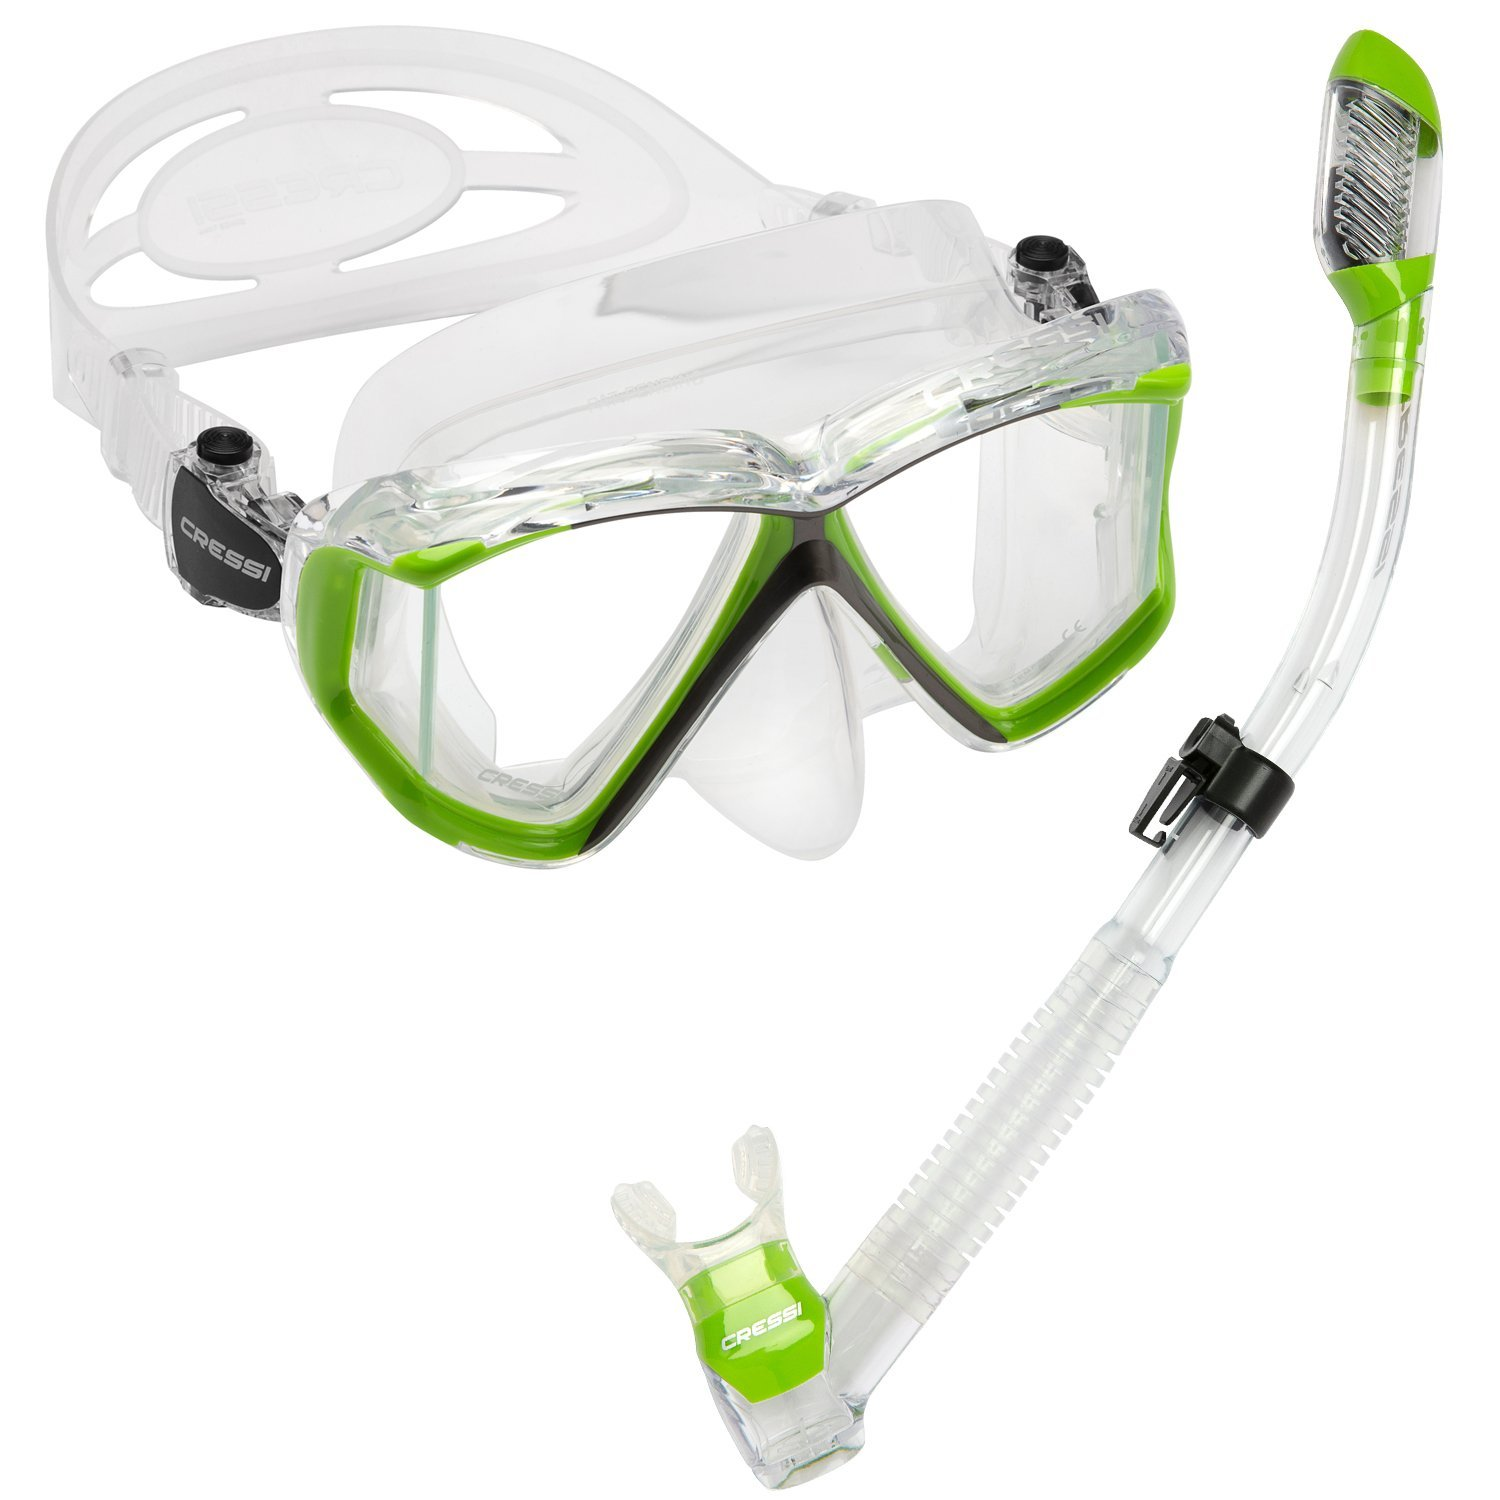 Cressi Panoramic Wide View 4 Panel Mask Dry Snorkel Set, Lime Green/Clear Silicone by Cressi